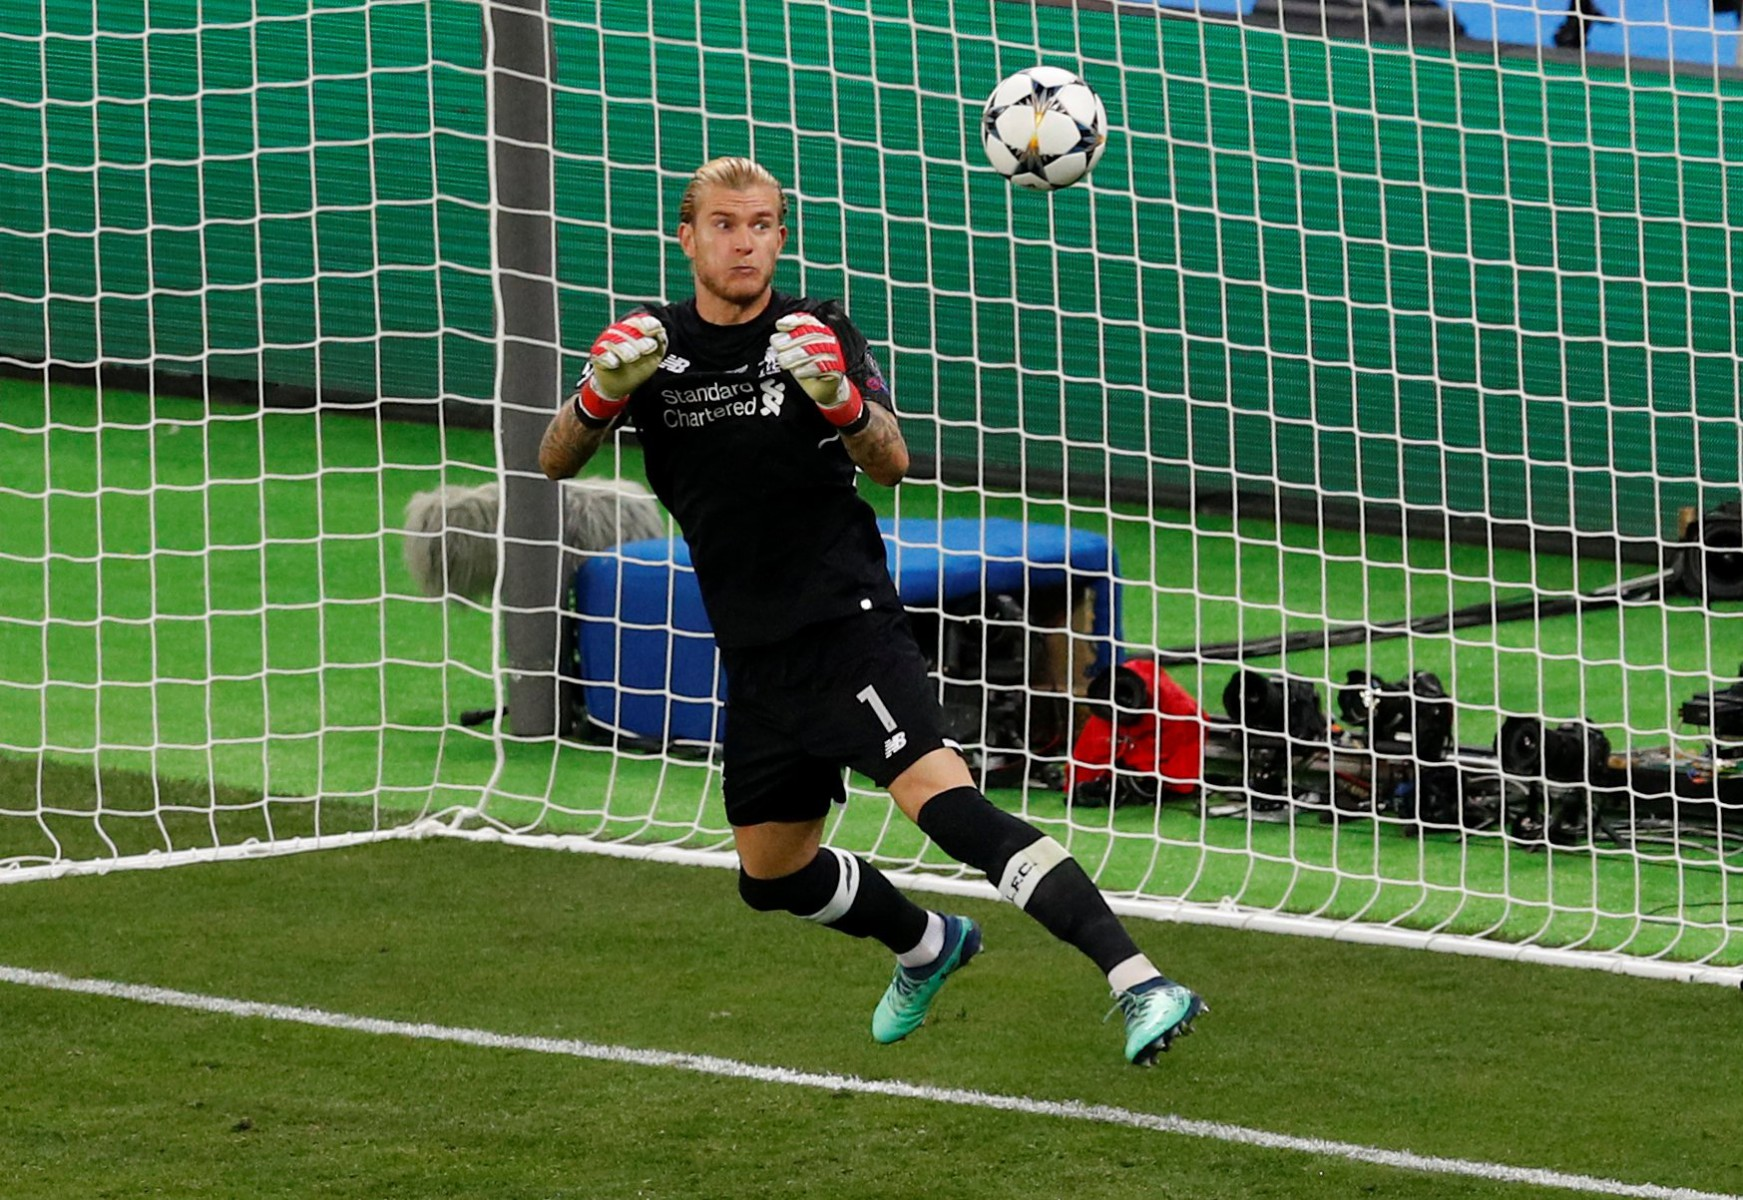 Karius was sent out on a two-year loan to Besiktas after his Champions League final nightmare